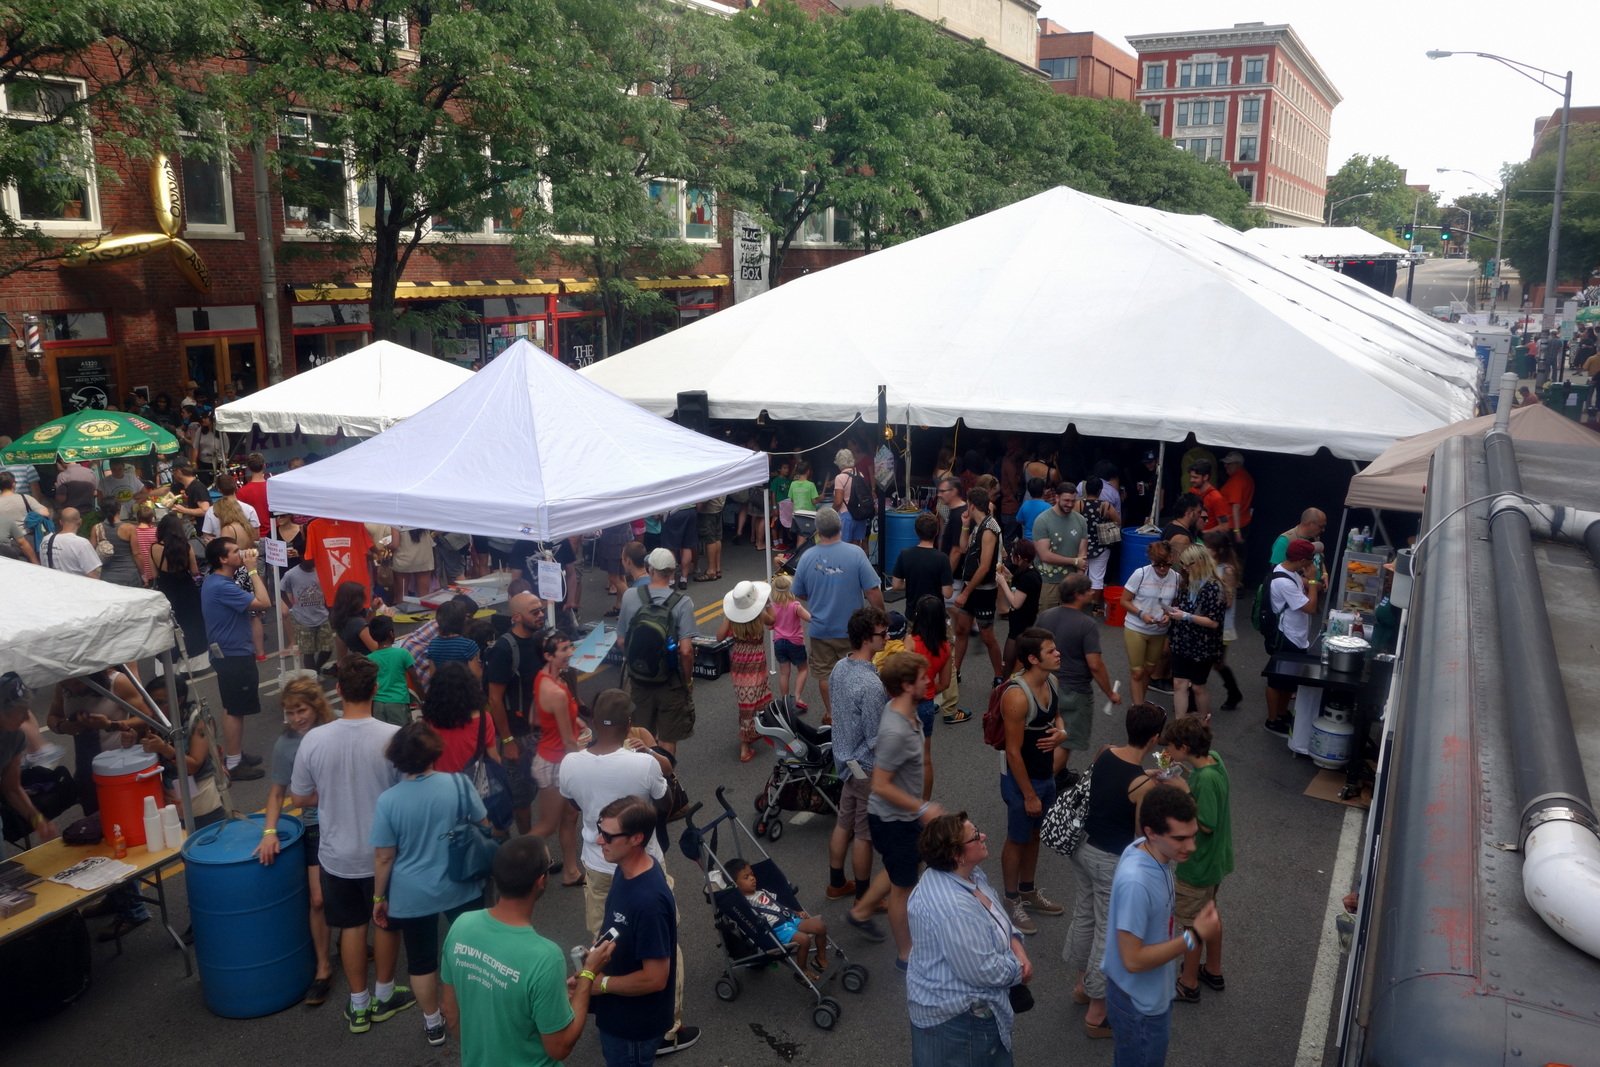 Reporting Back from the 5th annual Rhode Island Mini Maker Faire (and Foo Fest, and AS220 Labs!)